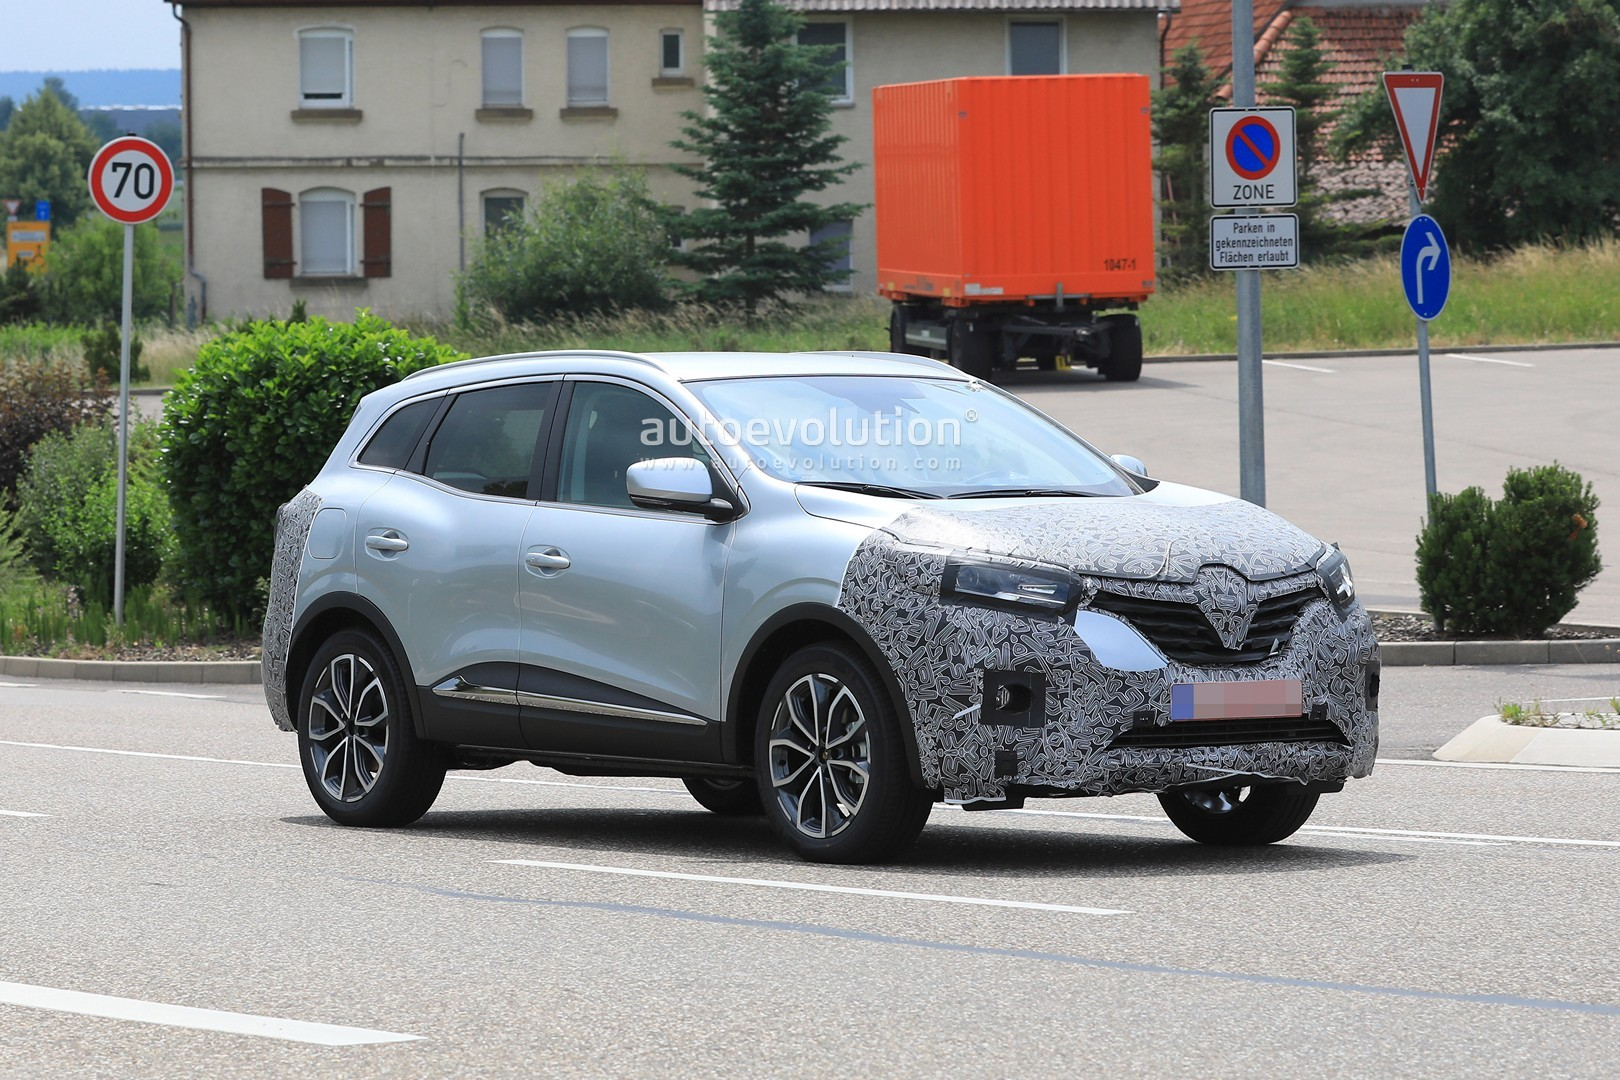 2018 - [Renault] Kadjar restylé  - Page 9 2019-renault-kadjar-facelift-spied-with-new-front-end-will-debut-in-september_6